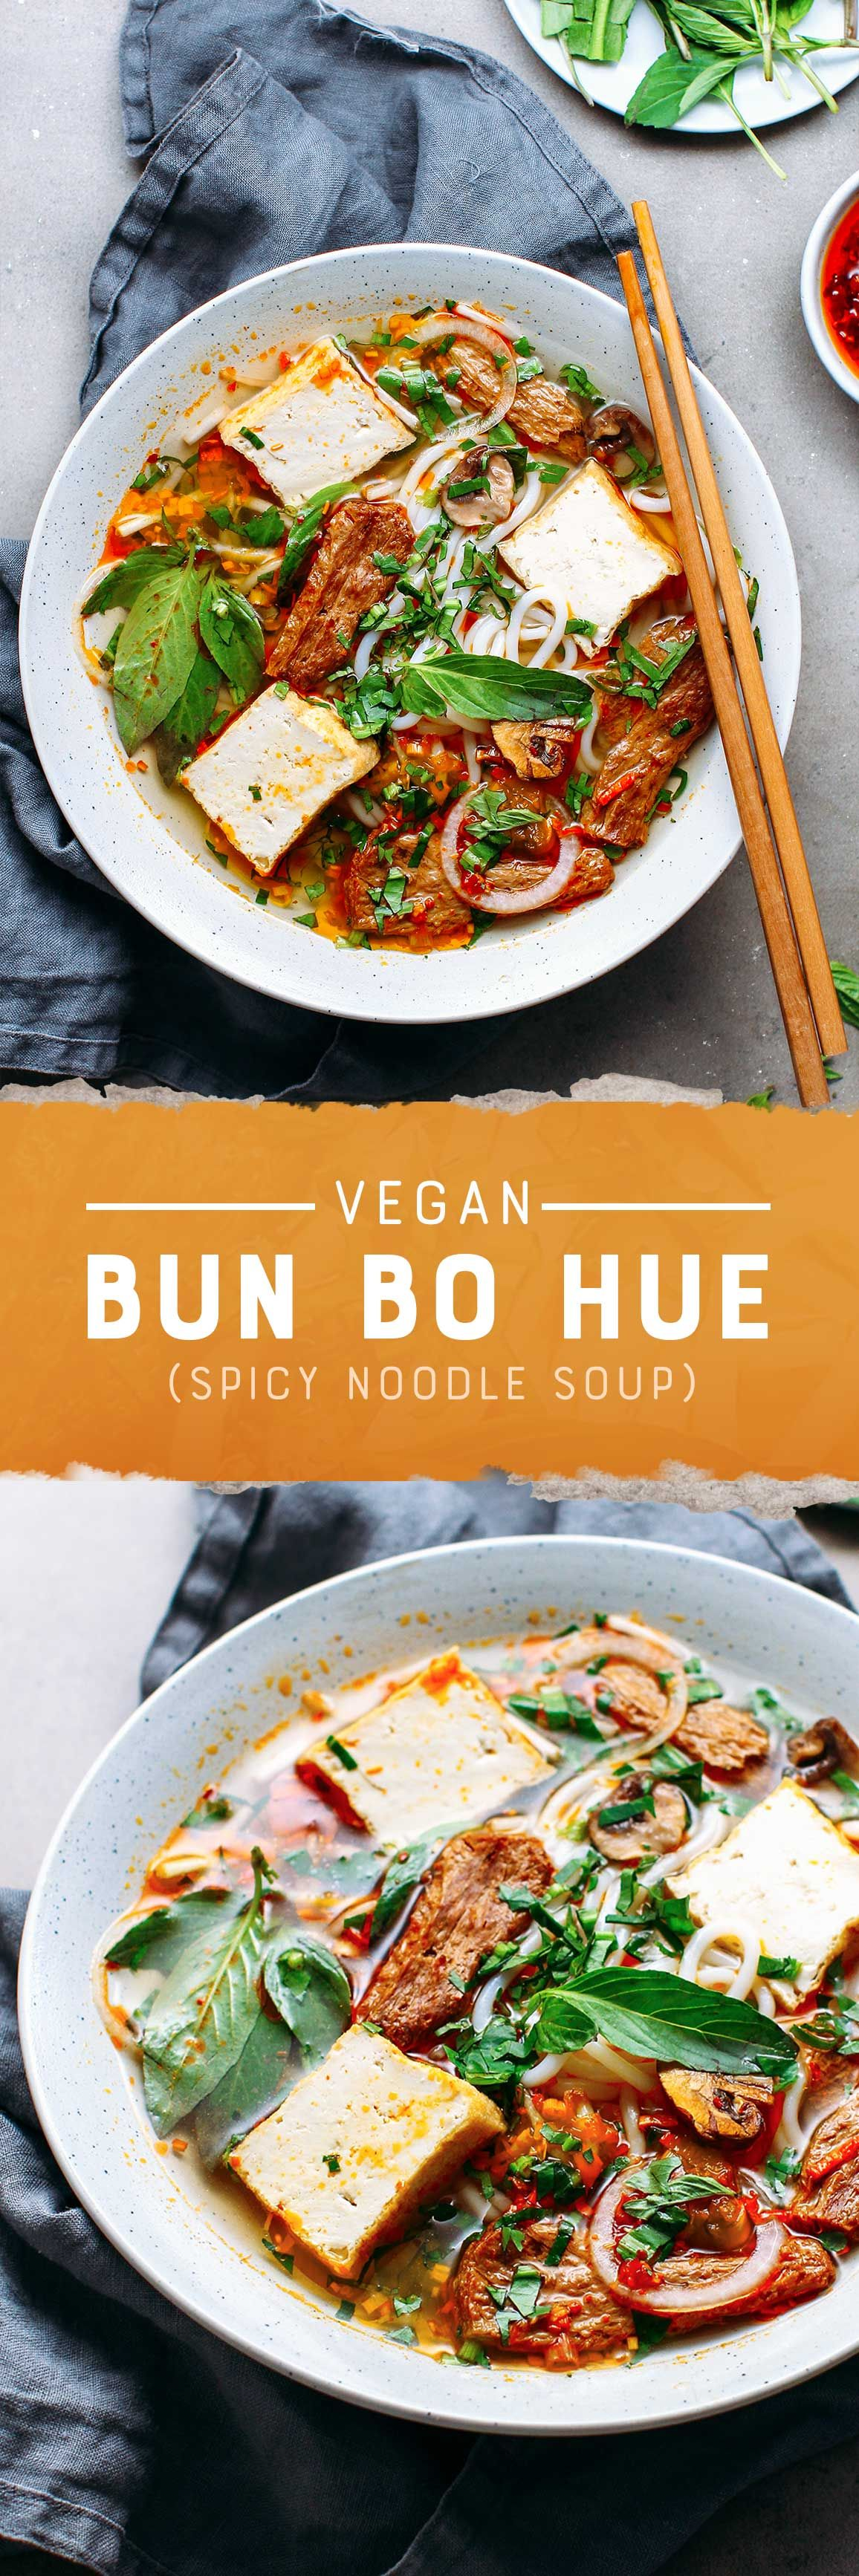 Incredibly flavorful Vietnamese noodle soup that comes homemade satay fried tofu sautéed mushrooms and vegan beef